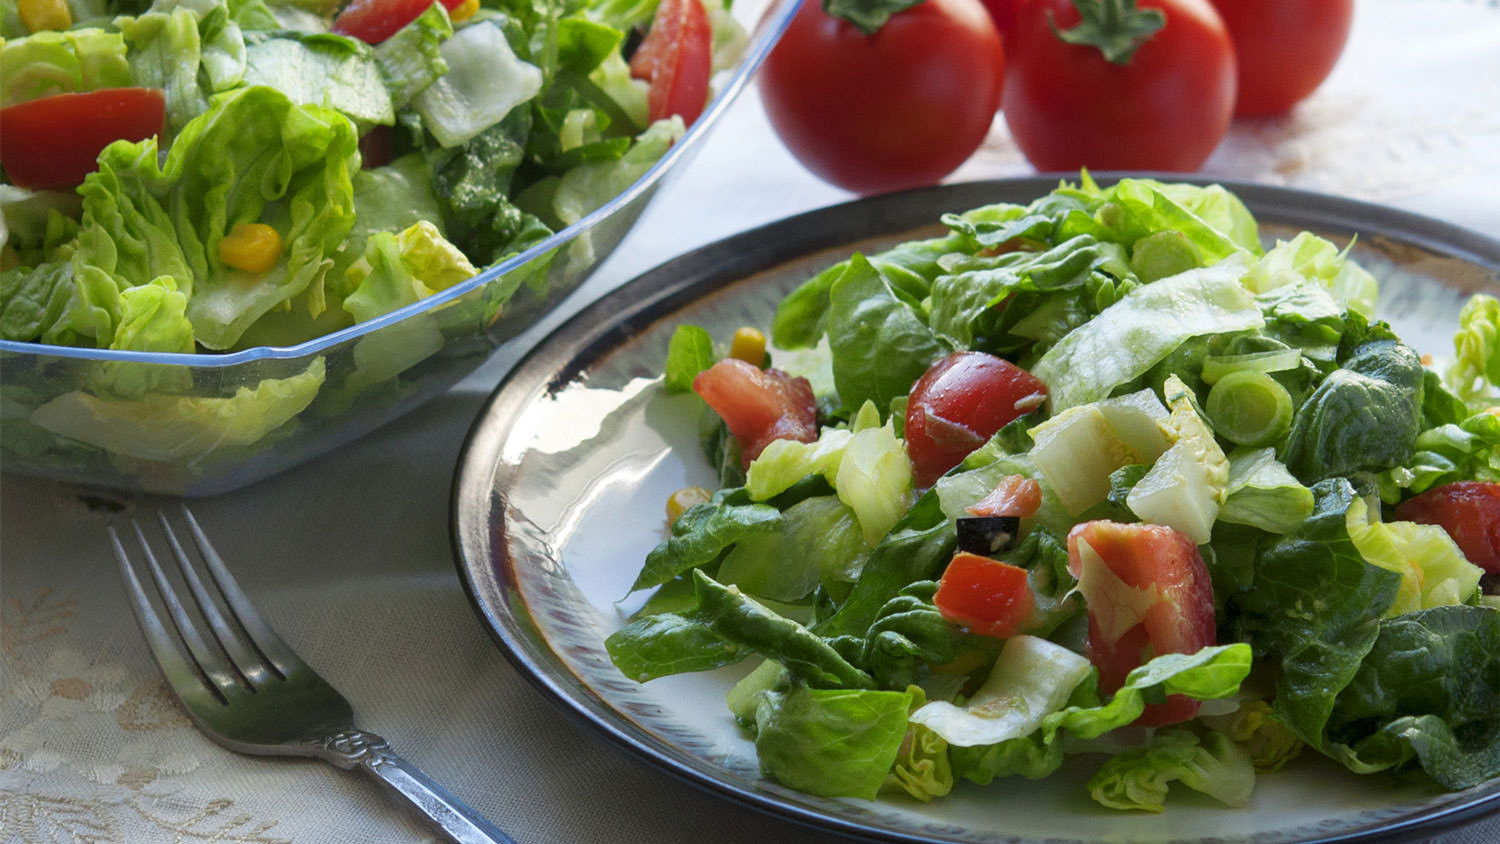 Low Fat Salad Recipes  Low fat salad dressing